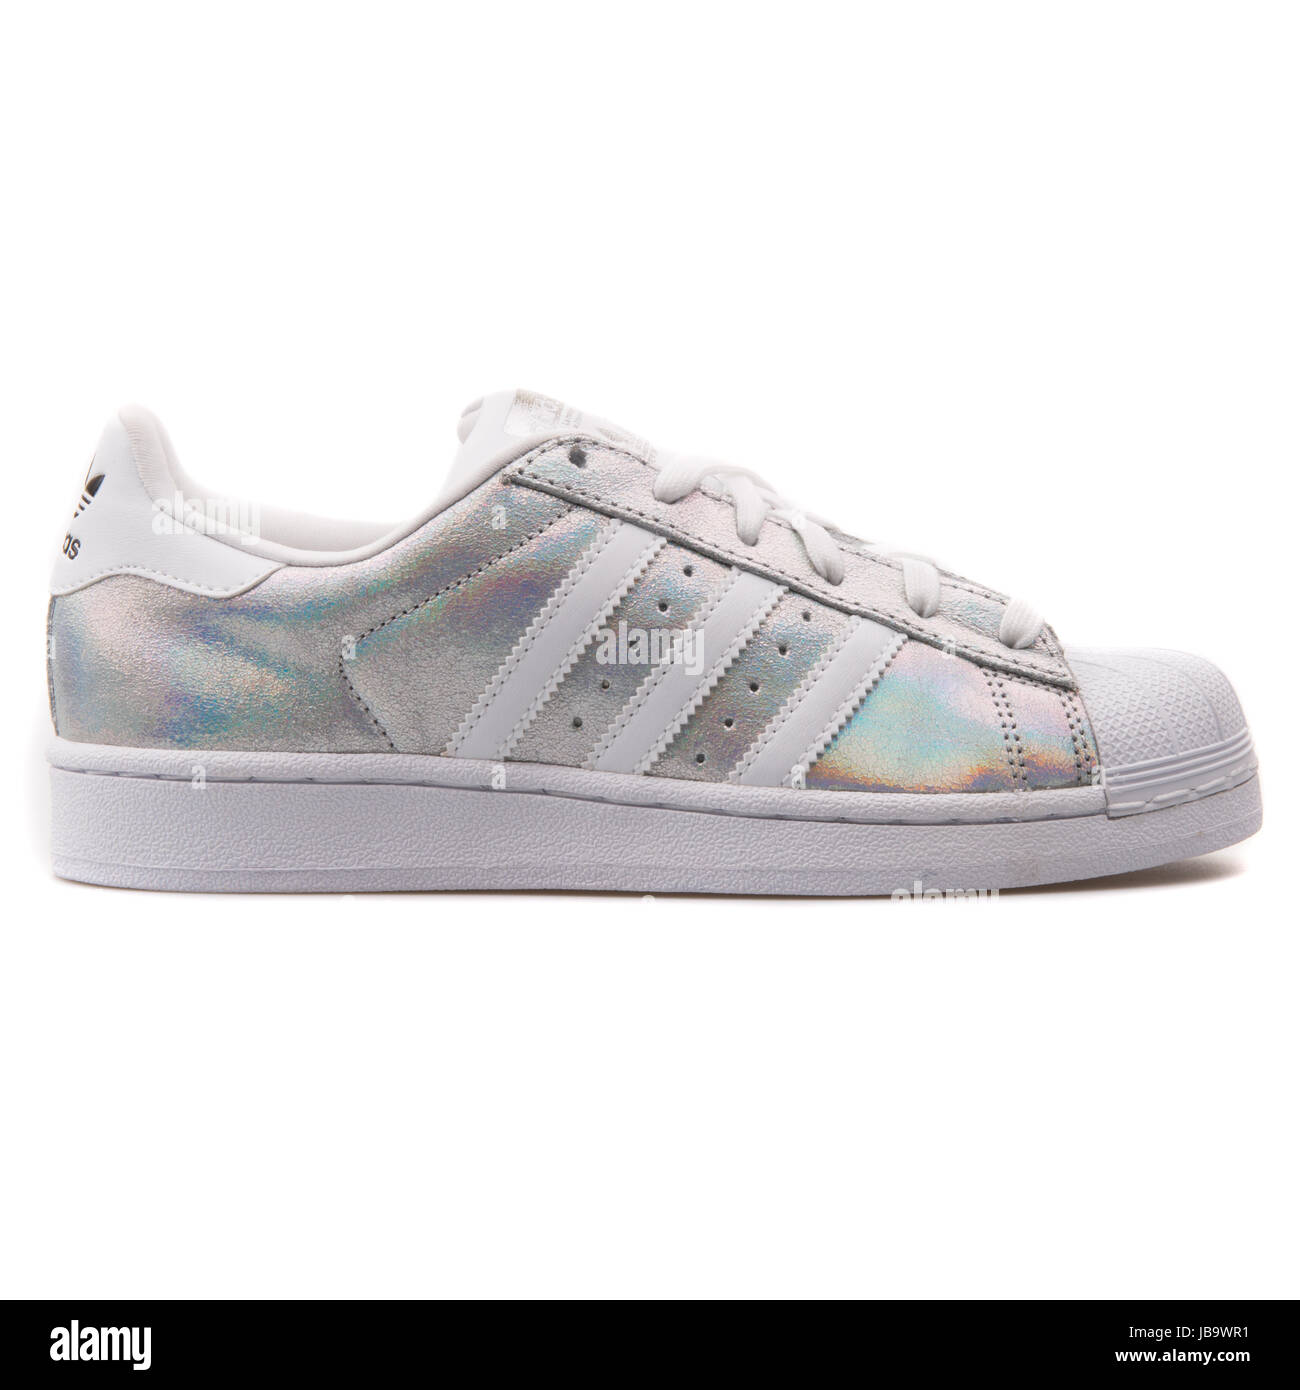 purchase cheap c515d 03498 Adidas Superstar W Holograma Iridescent zapatos de mujer - S81644